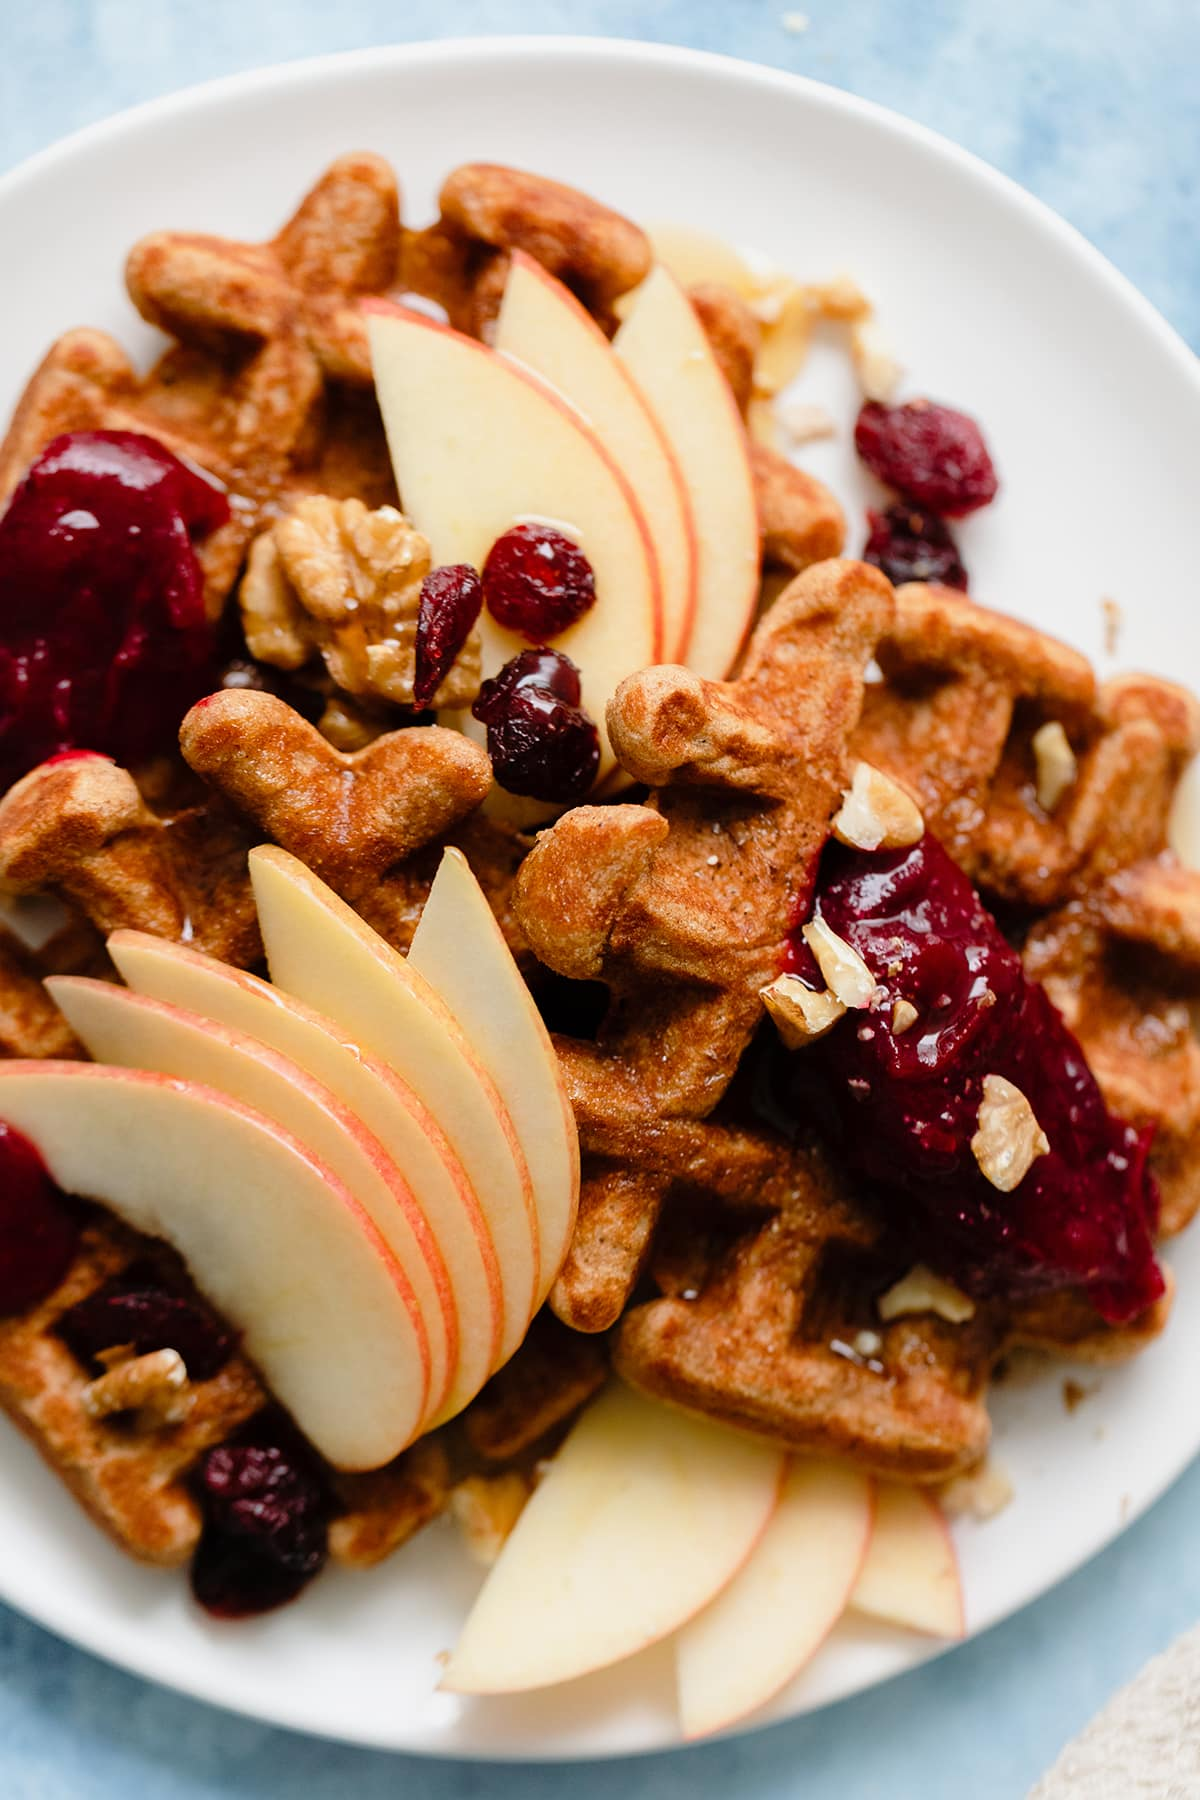 An overhead photo fo Gluten-Free Apple Butter Waffles with apples, cranberries, and walnuts on blue background.